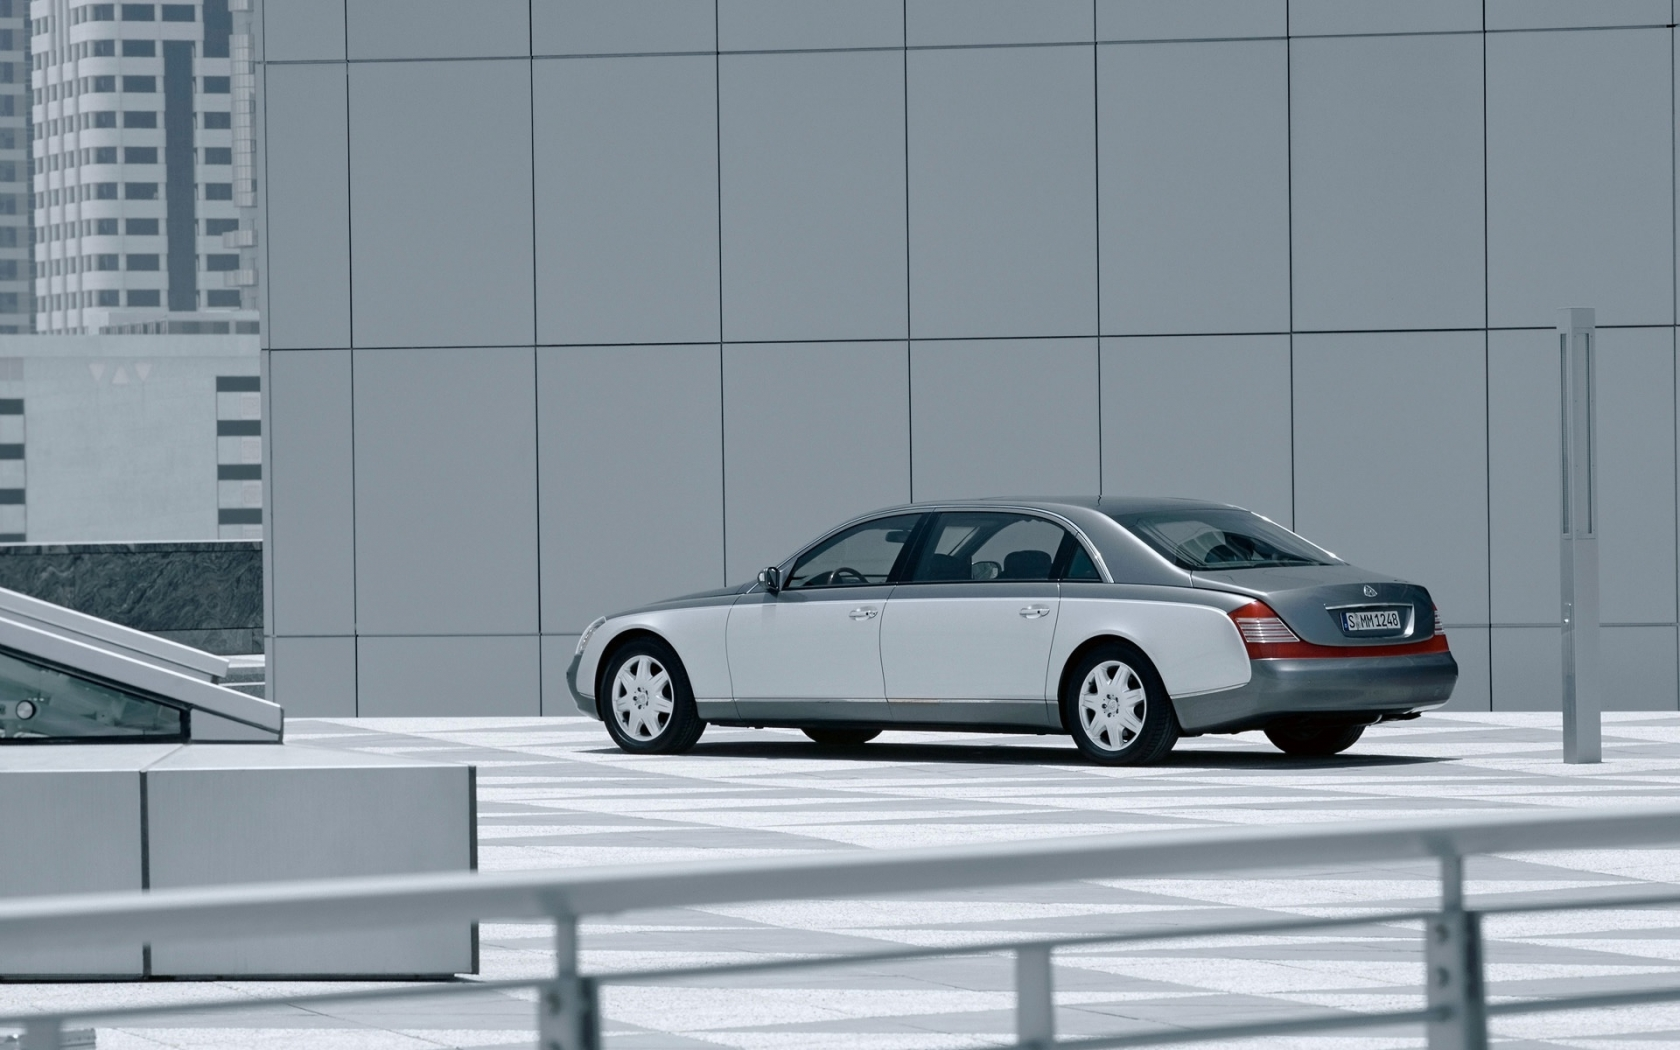 Maybach 62 Outside Left Front 3 for 1680 x 1050 widescreen resolution